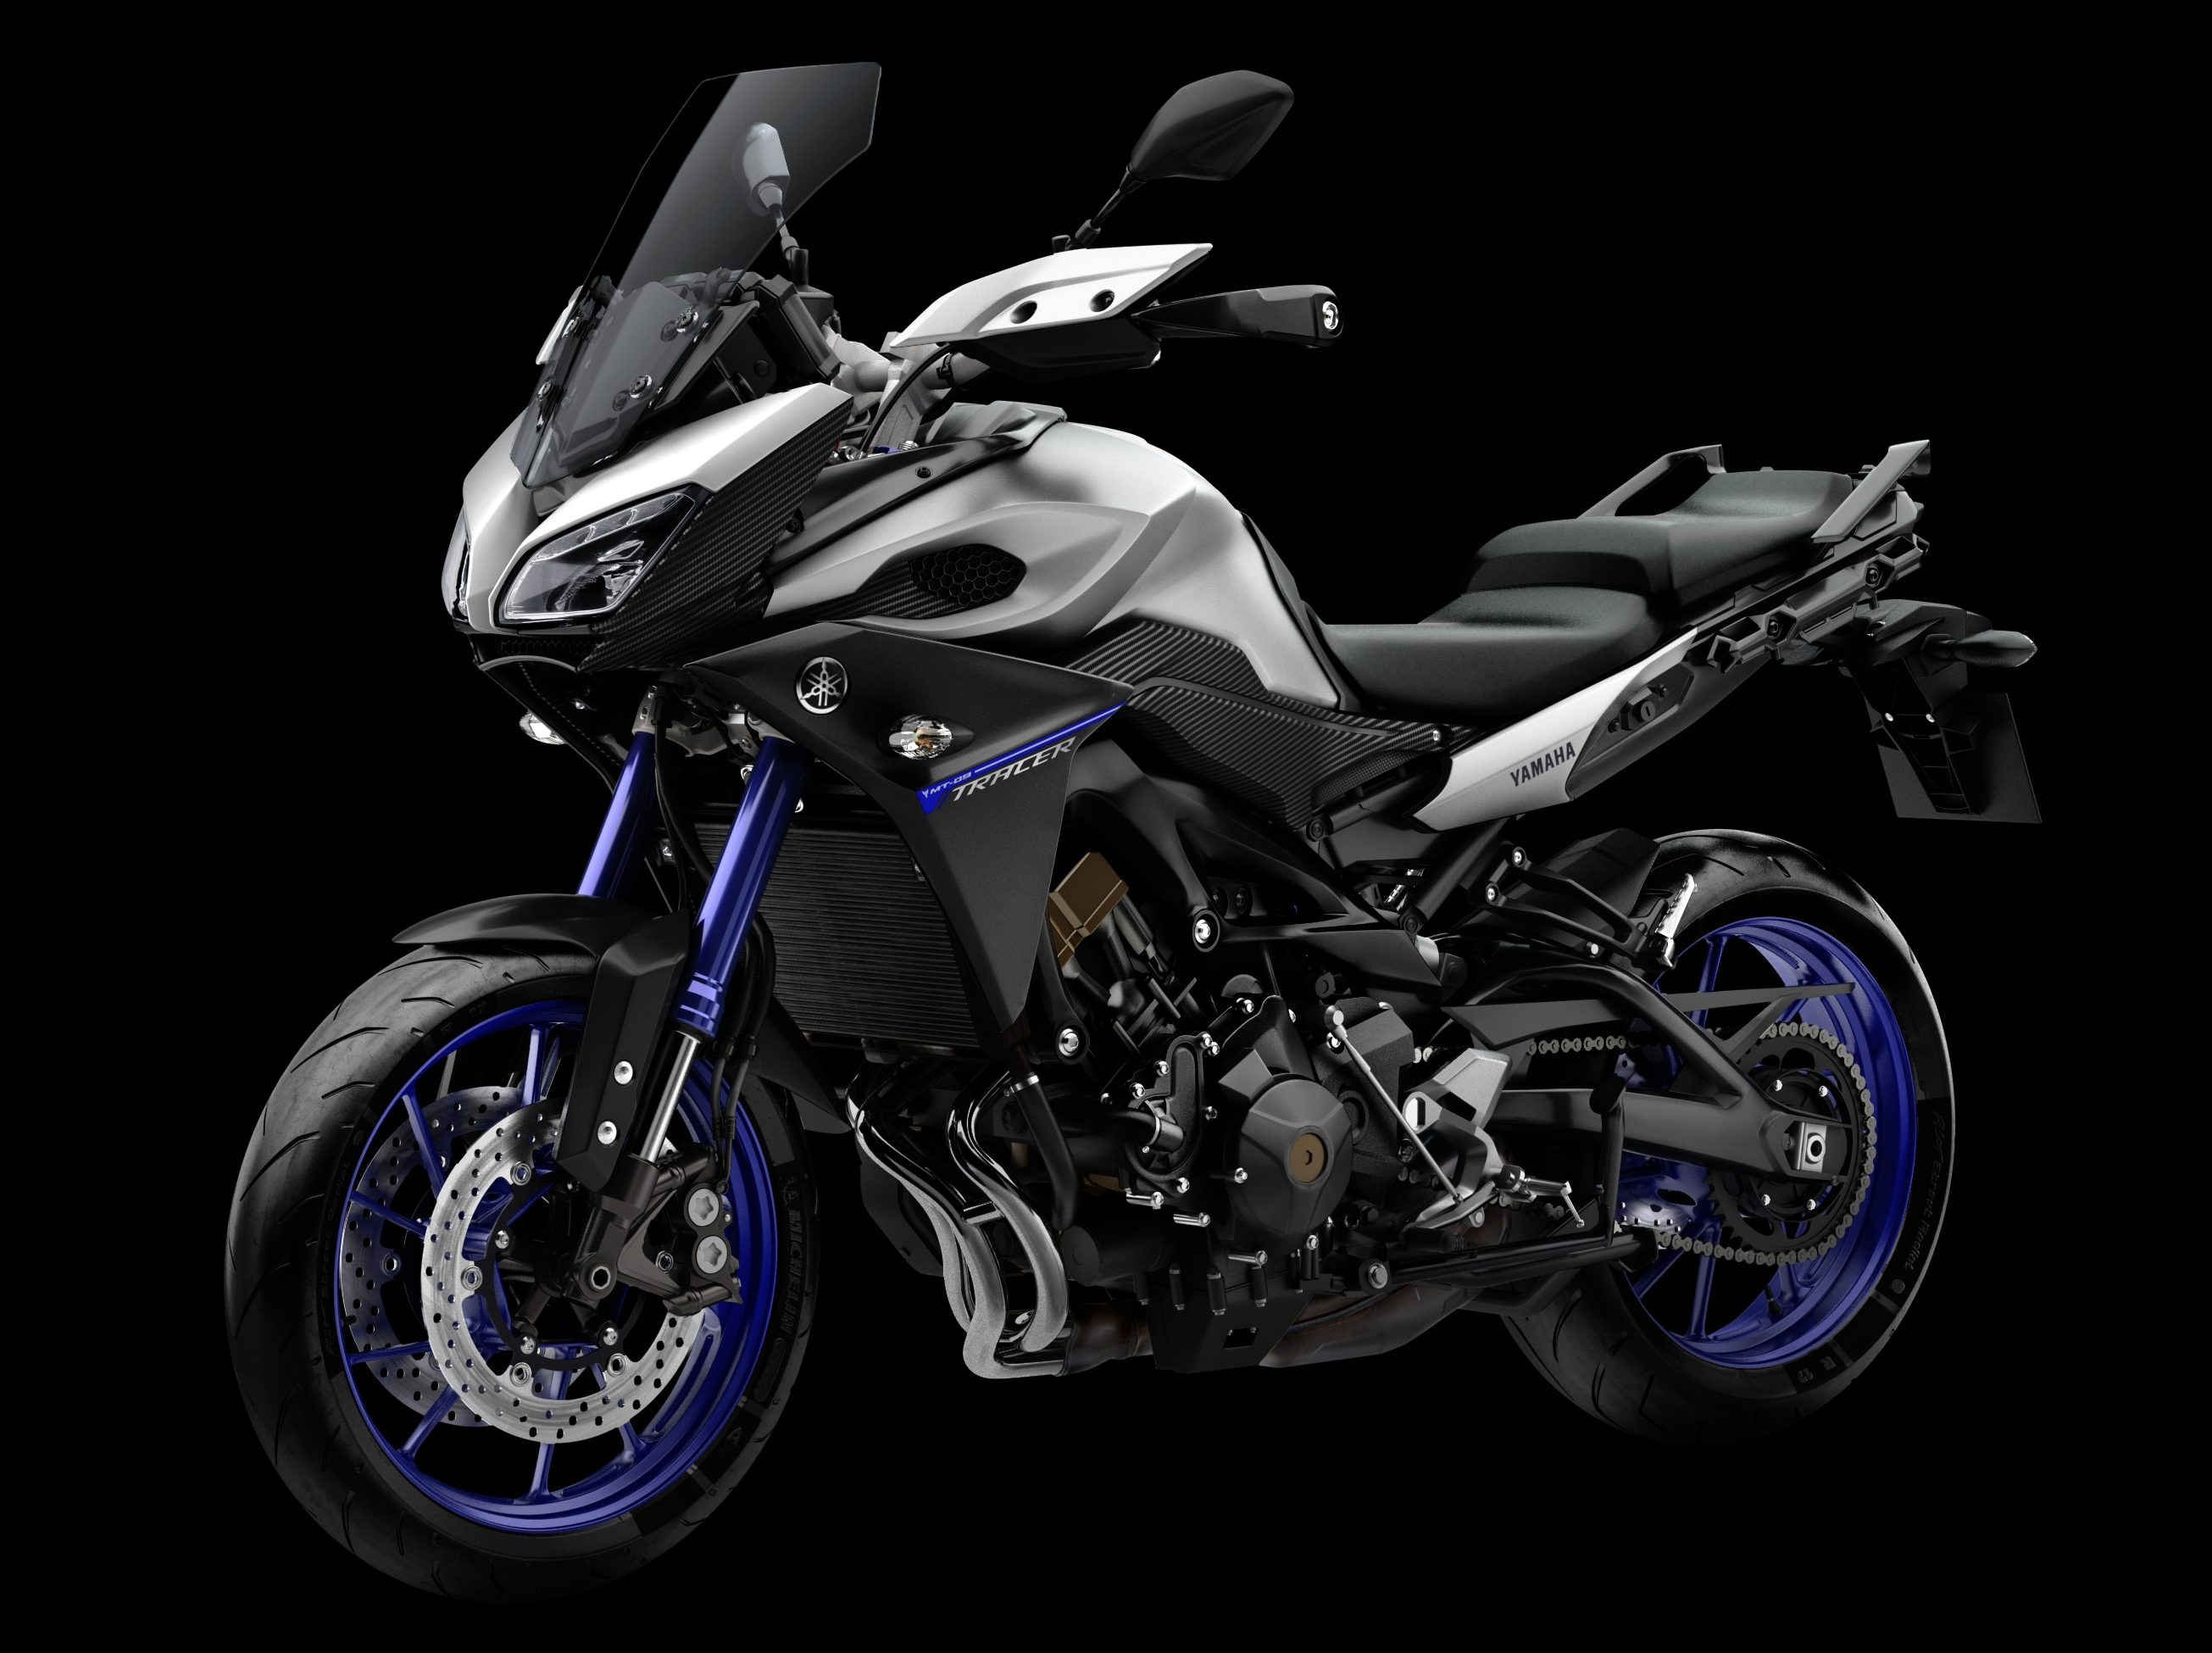 2016 yamaha mt 09 tracer in malaysia rm59 900 image 514863. Black Bedroom Furniture Sets. Home Design Ideas